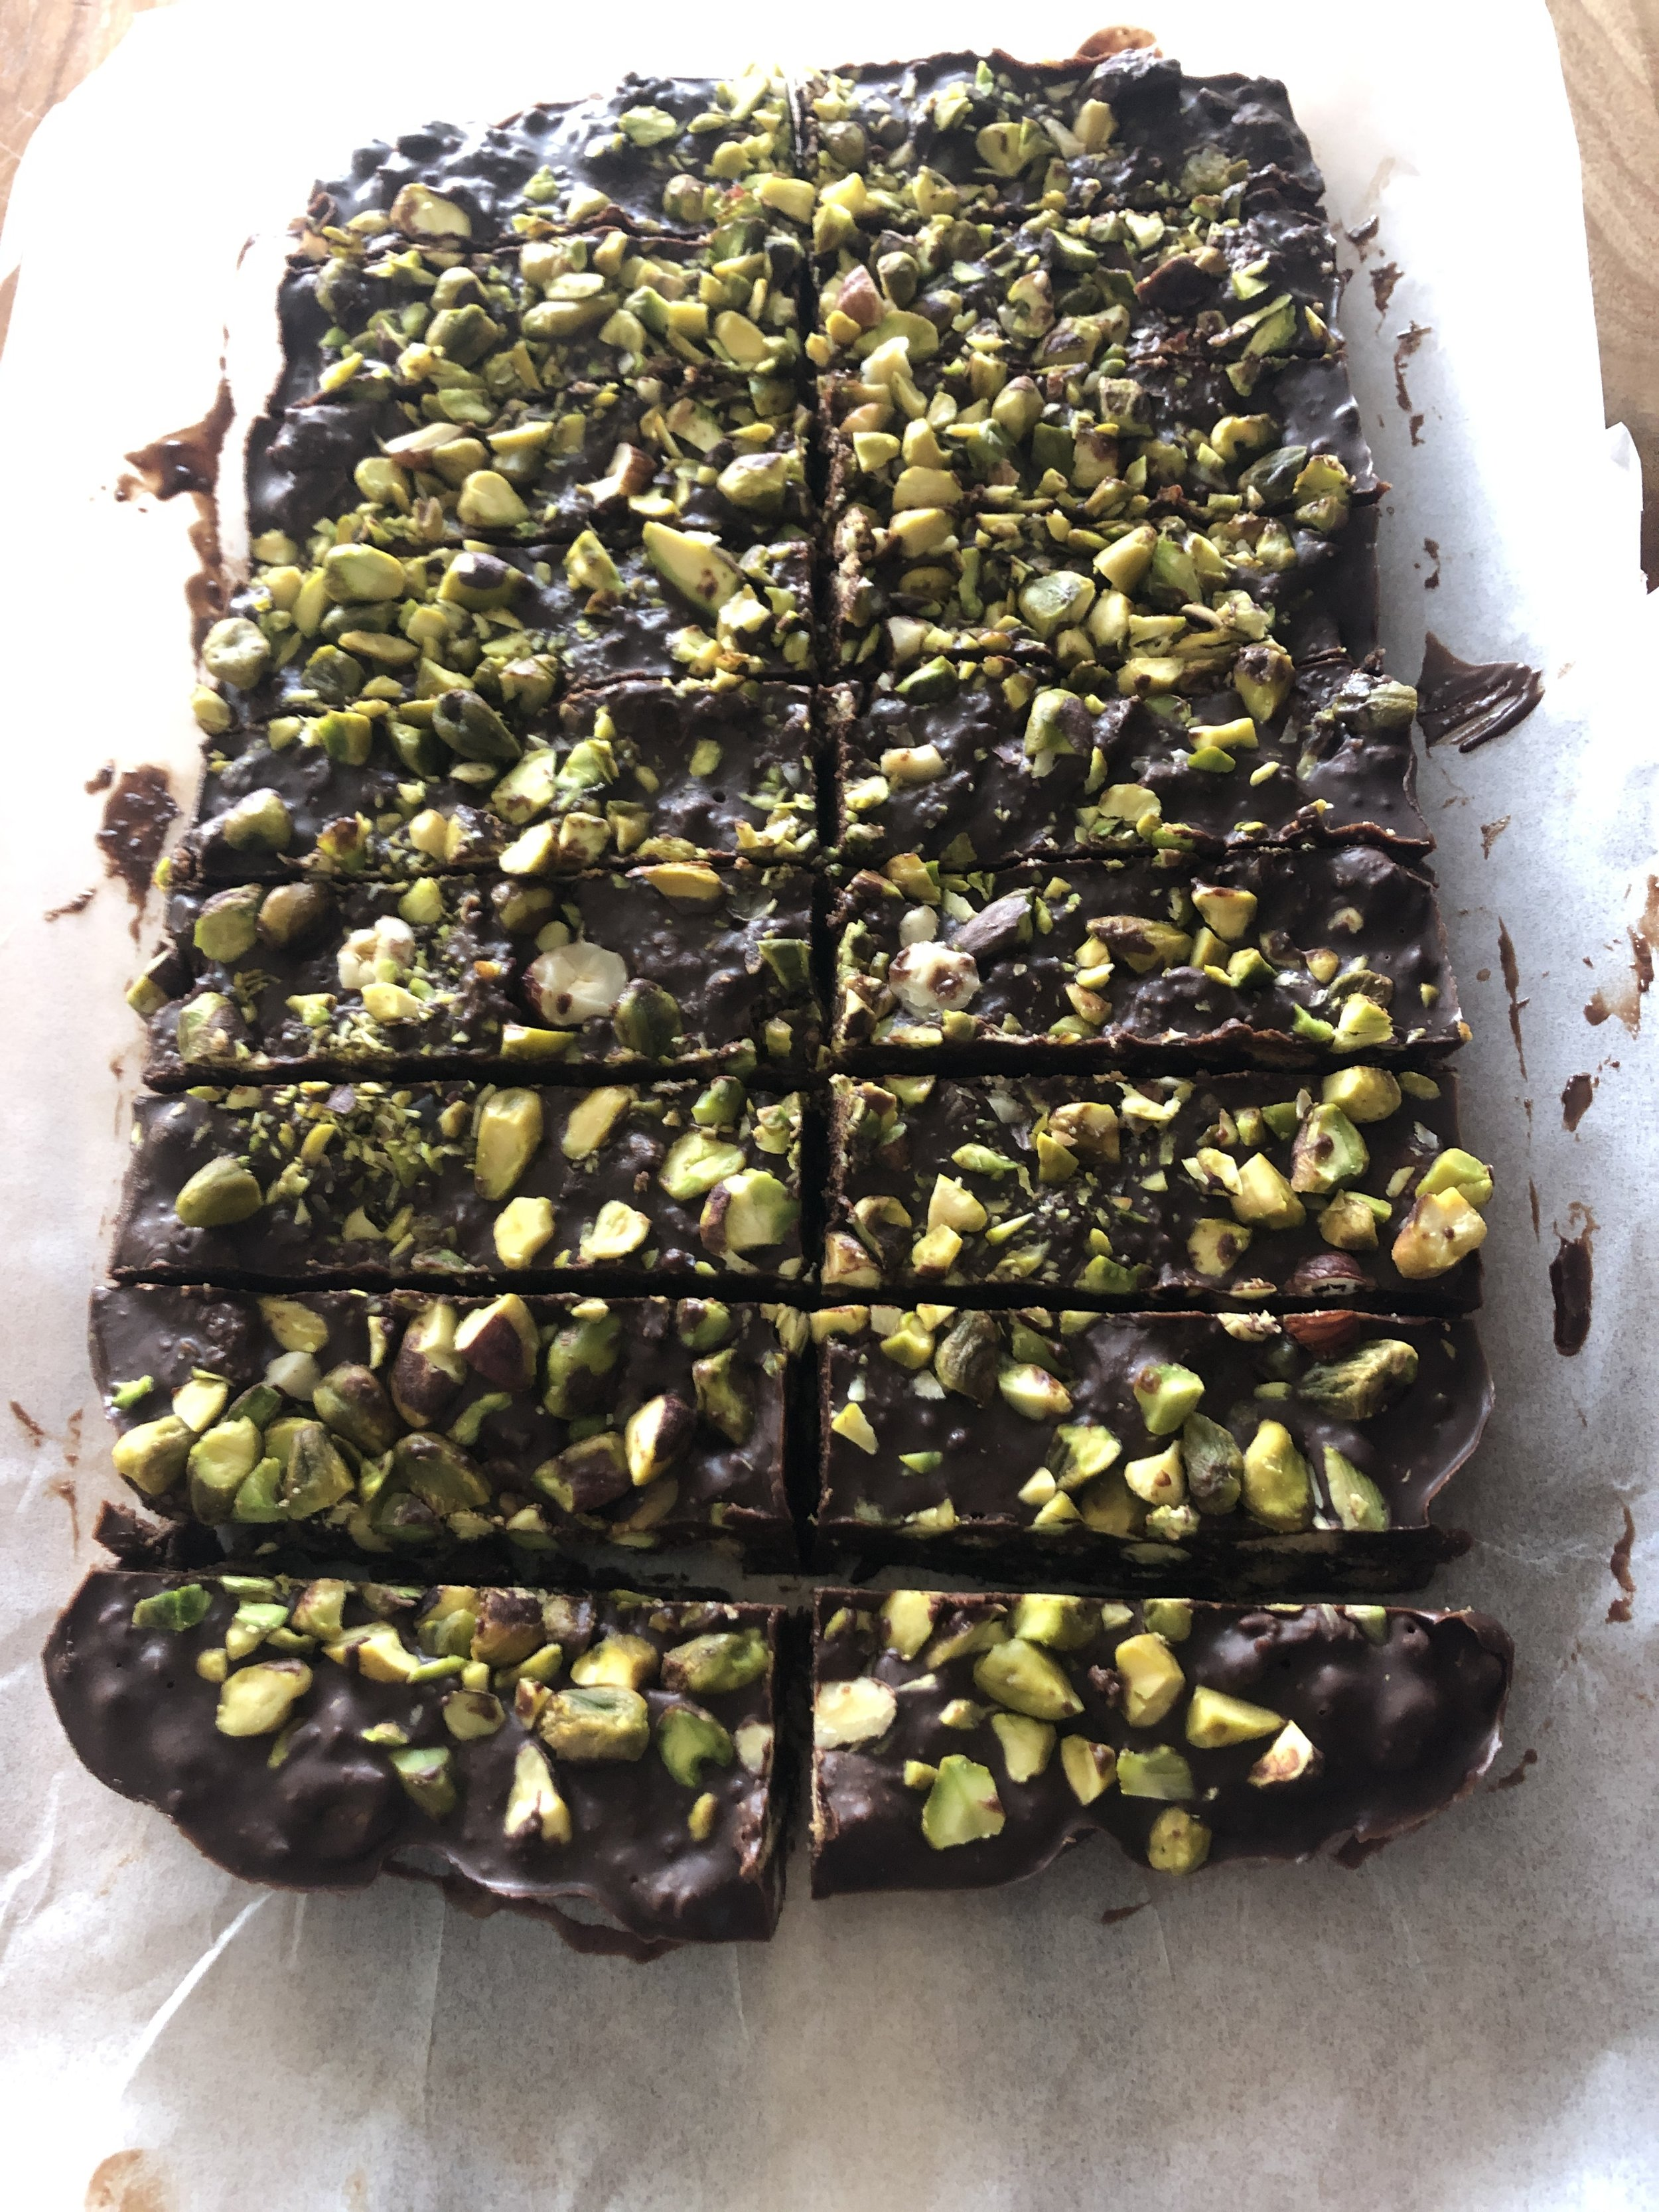 Ottolenghi's mint chocolate fridge cake makes the perfect leaving gift -